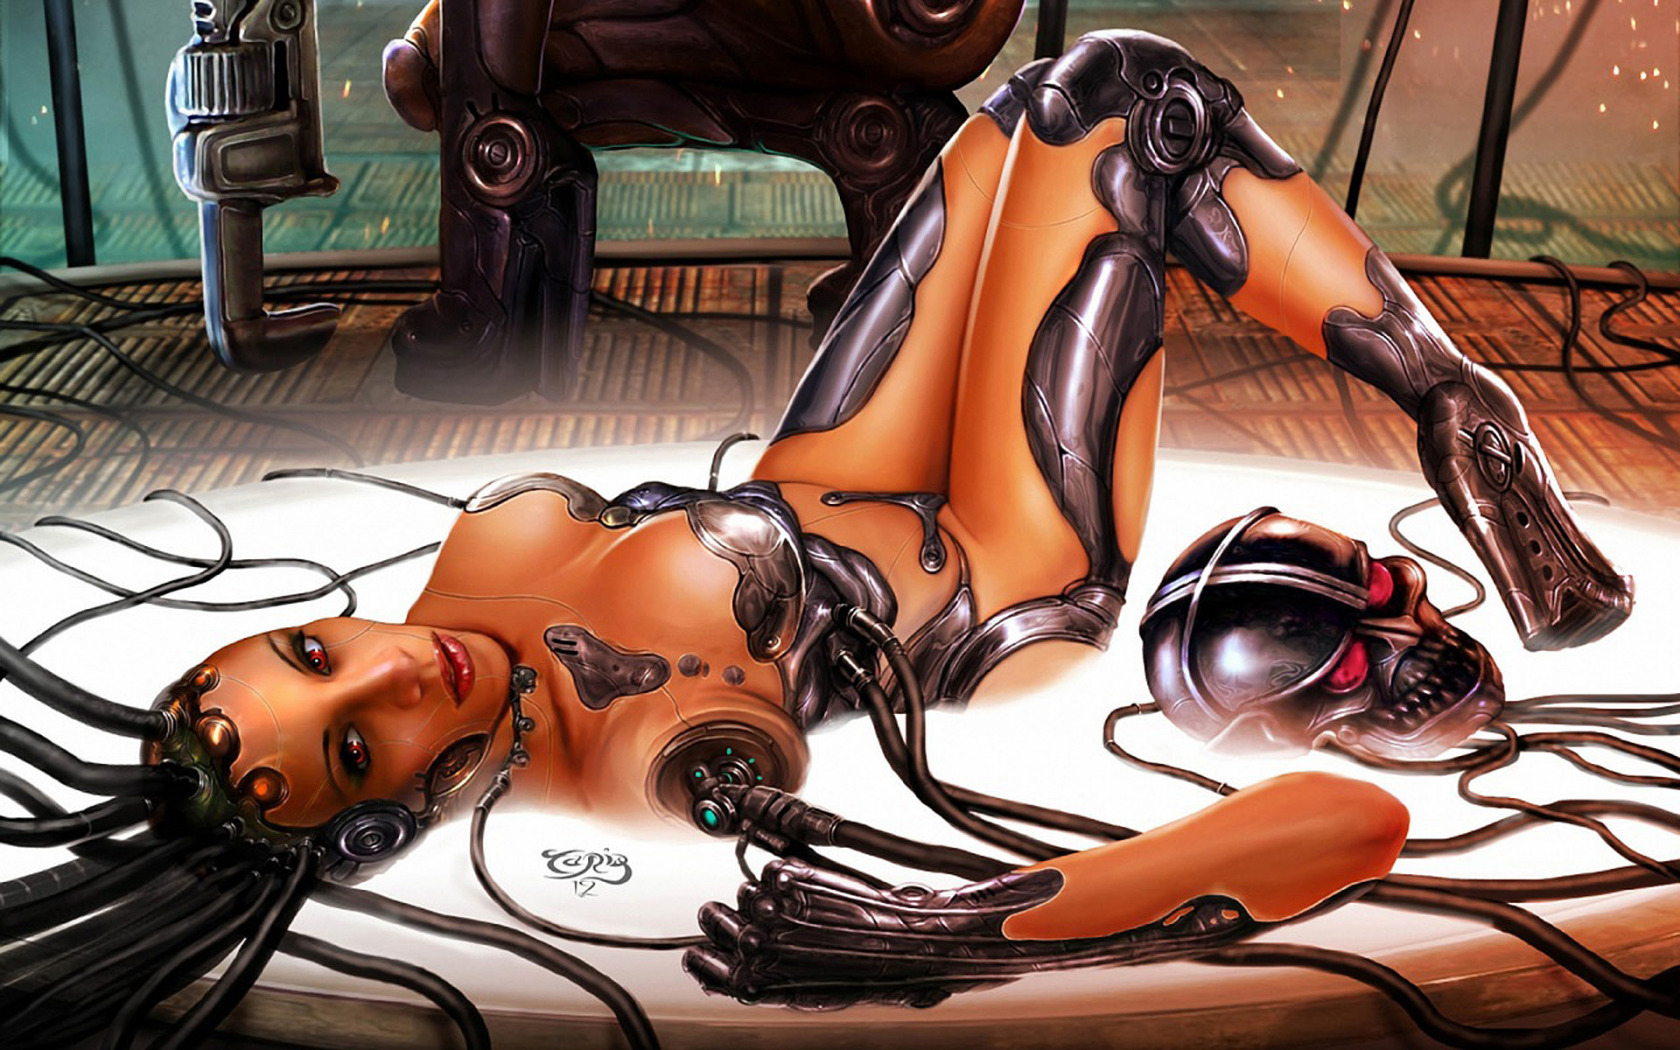 Download erotic game robot nude pic